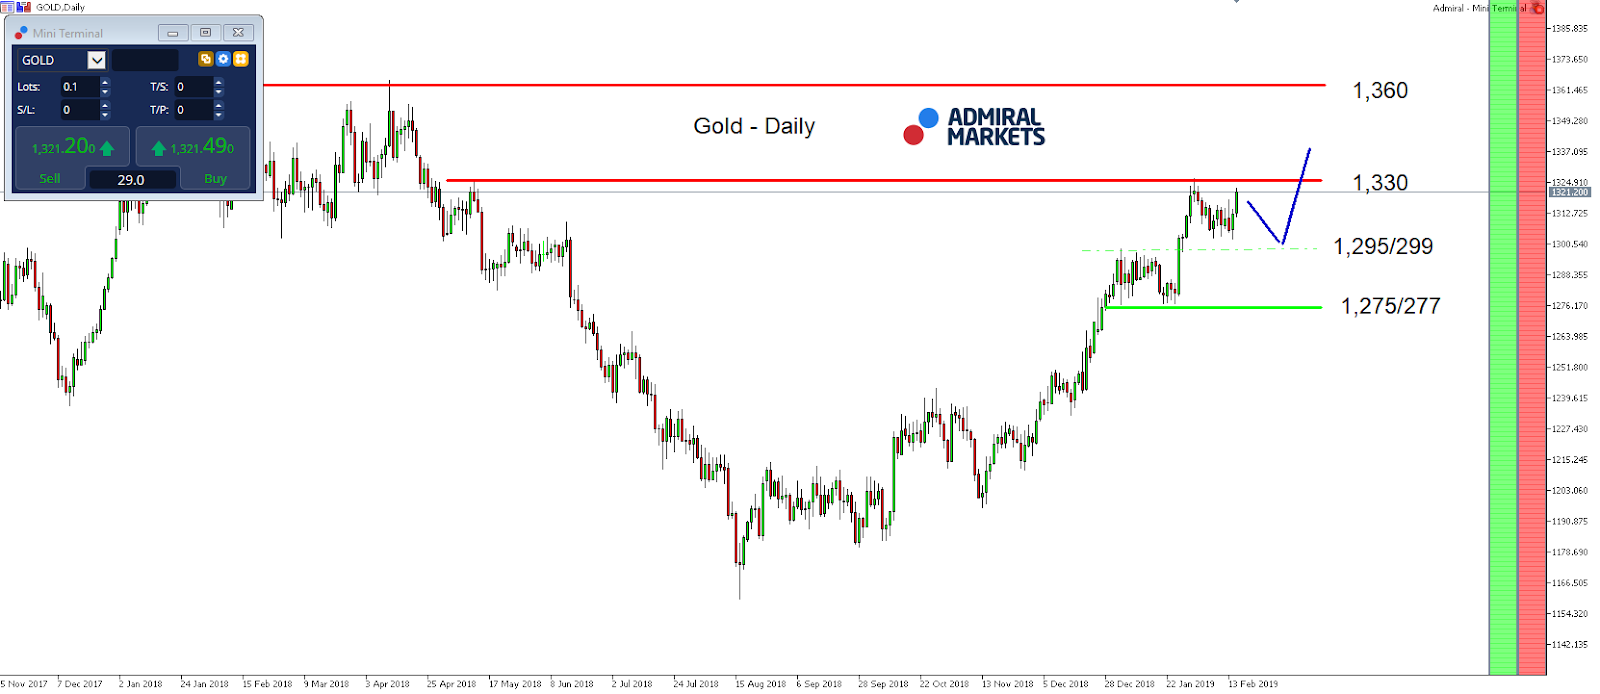 Gold index daily chart